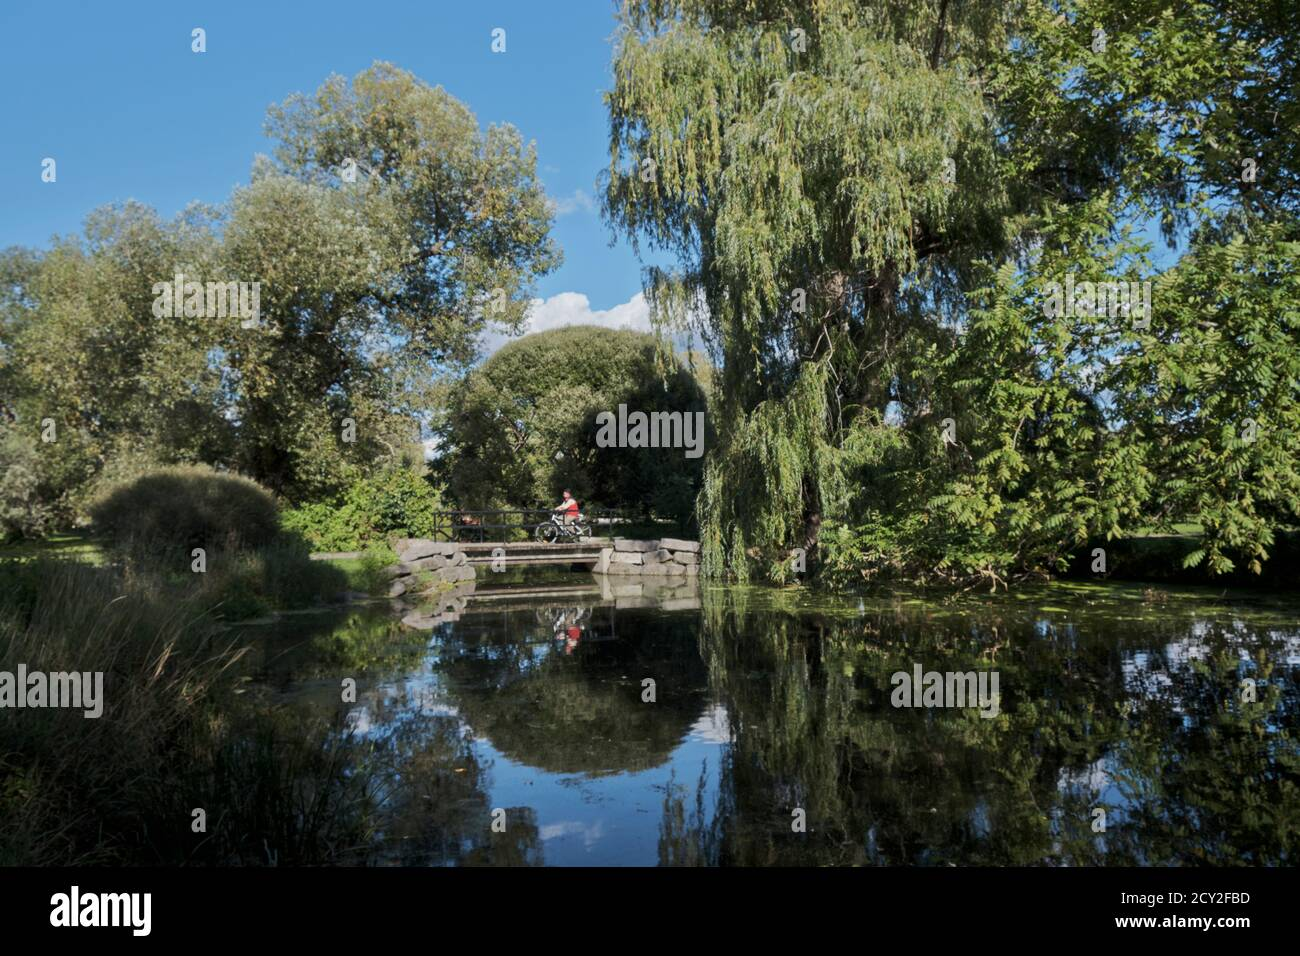 bridge-over-a-pond-on-rideau-canal-side-arm-with-cyclist-going-over-large-willow-reflecting-on-side-2CY2FBD.jpg